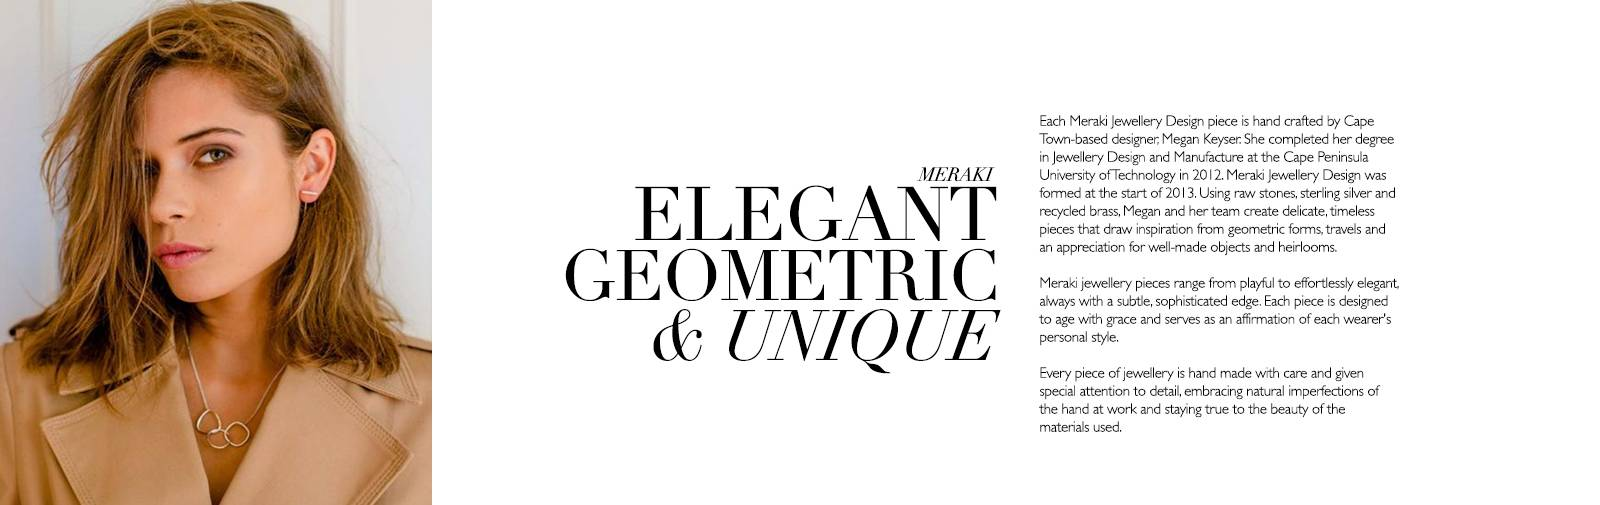 """MERAKI - ELEGANT GEOMETRIC & UNIQUE - meraki [may-rah-kee] (adjective) A word that modern Greeks use to describe doing something with soul, creativity, or love — putting """"something of yourself"""" into your work.  Each Meraki Jewellery Design piece is hand crafted by Cape Town-based designer, Megan Keyser. She completed her degree in Jewellery Design and Manufacture at the Cape Peninsula University of Technology in 2012. Meraki Jewellery Design was formed at the start of 2013. Using raw stones, sterling silver and recycled brass, Megan and her team create delicate, timeless pieces that draw inspiration from geometric forms, travels and an appreciation for well-made objects and heirlooms.  Meraki jewellery pieces range from playful to effortlessly elegant, always with a subtle, sophisticated edge. Each piece is designed to age with grace and serves as an affirmation of each wearer's personal style.  Every piece of jewellery is hand made with care and given special attention to detail, embracing natural imperfections of the hand at work and staying true to the beauty of the materials used."""